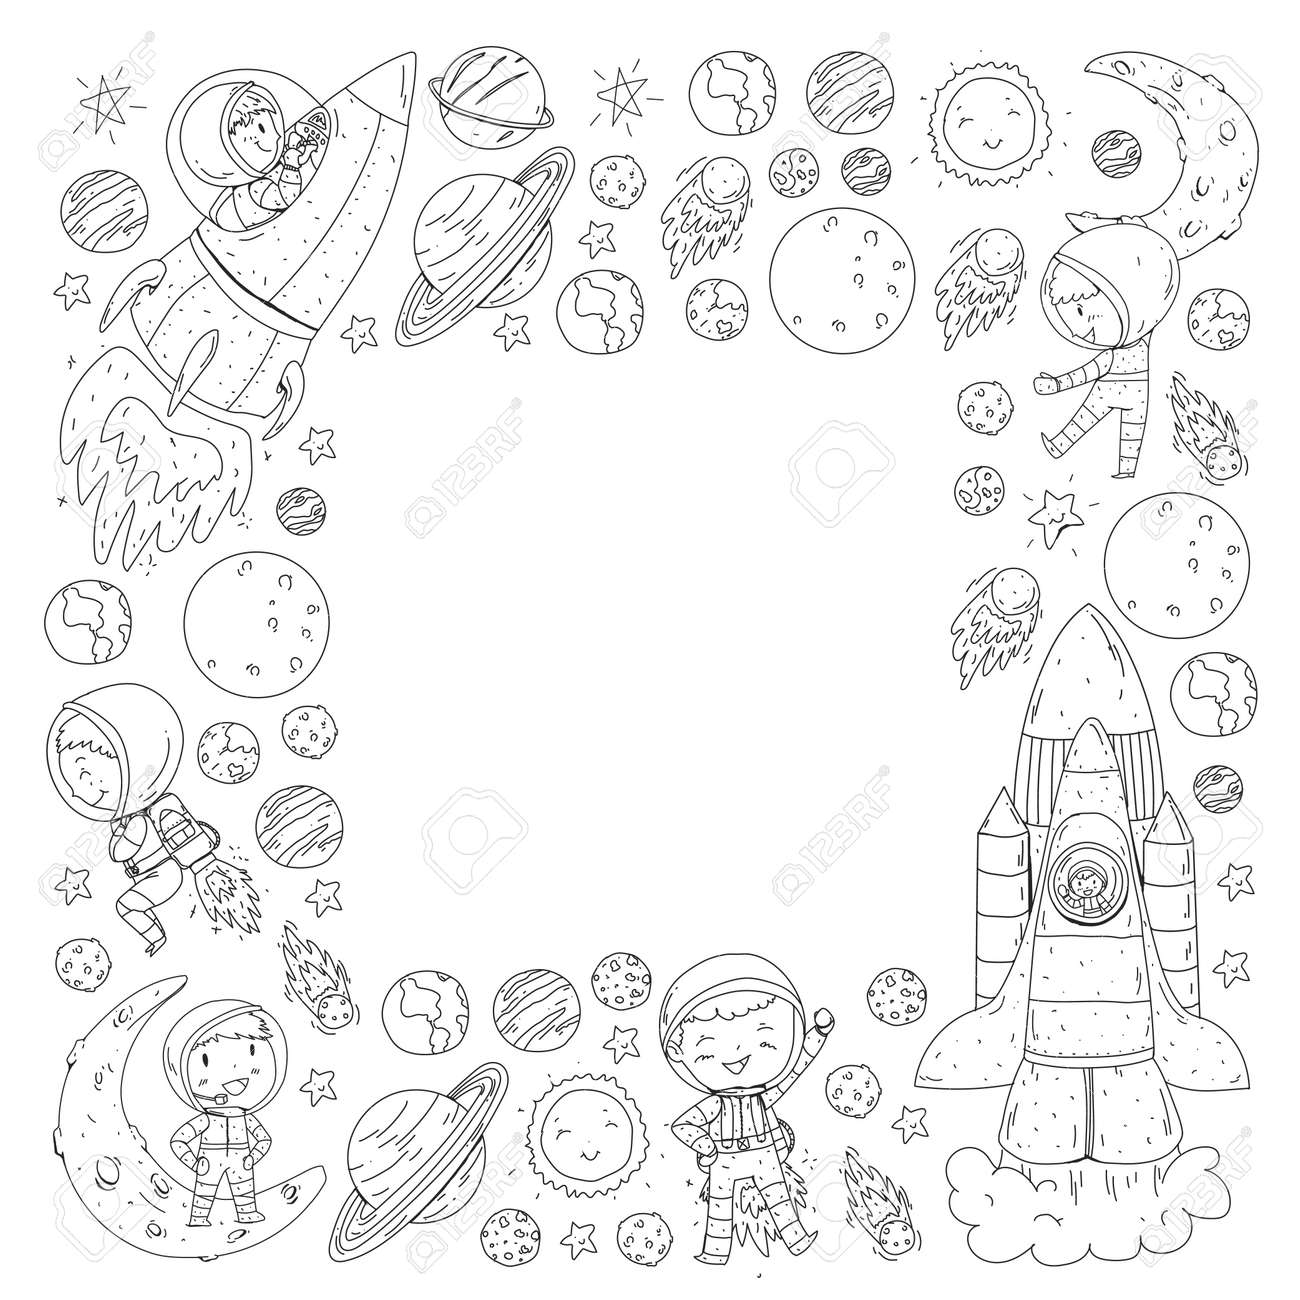 Earth Moon Sun Outline Clip Art at Clker.com - vector clip art ... | 1300x1300